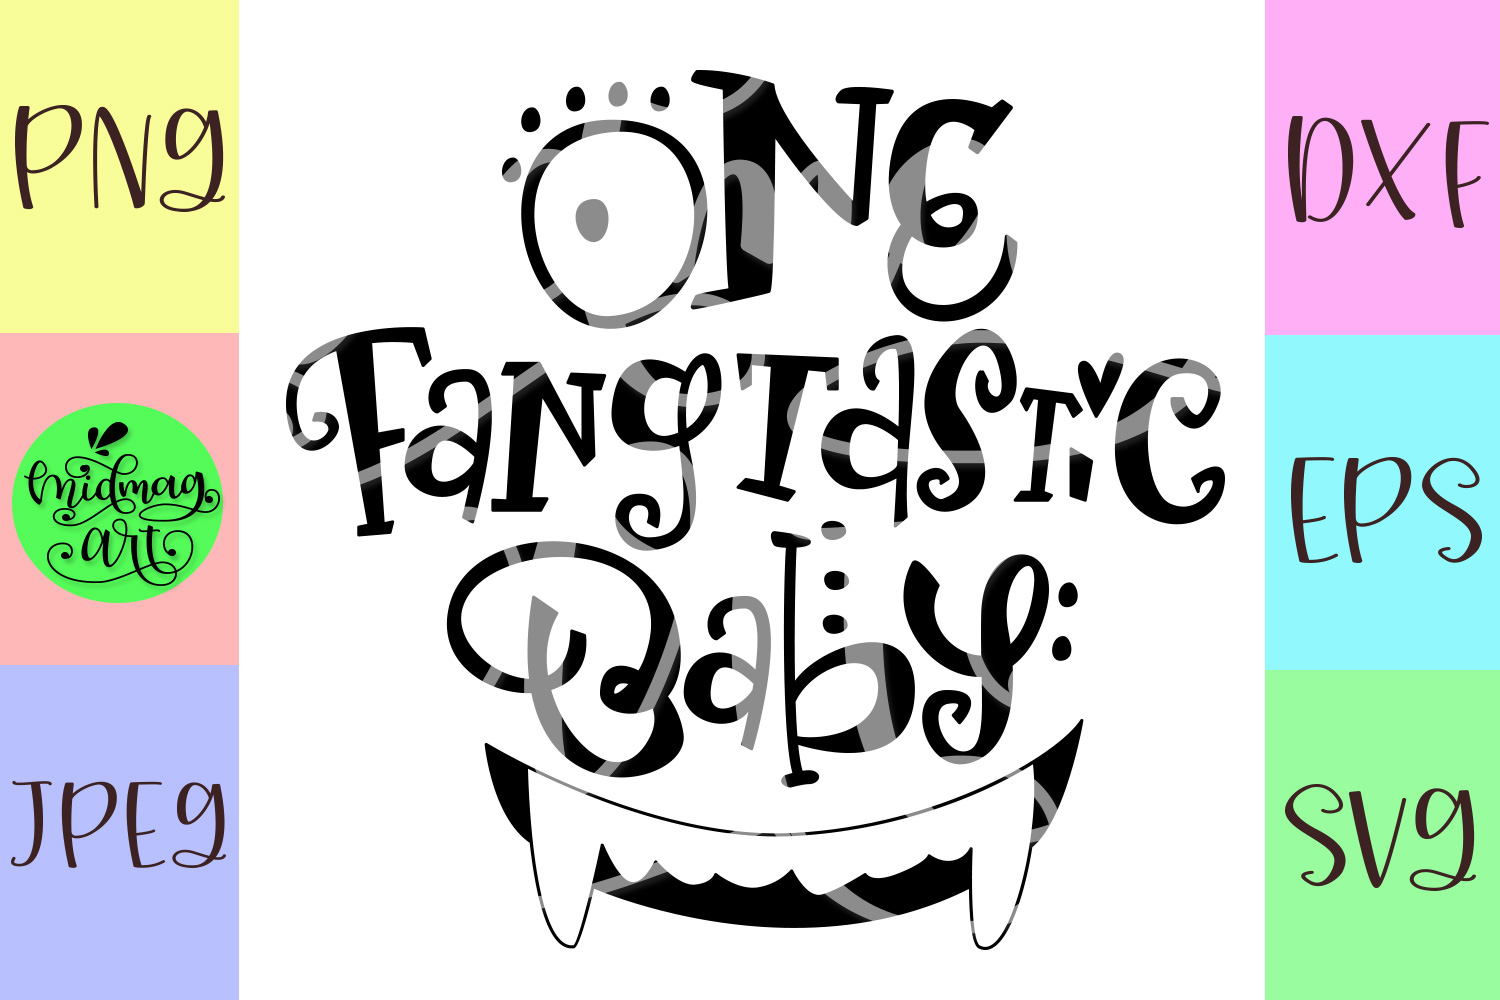 One fangtastic baby svg, halloween baby svg example image 2